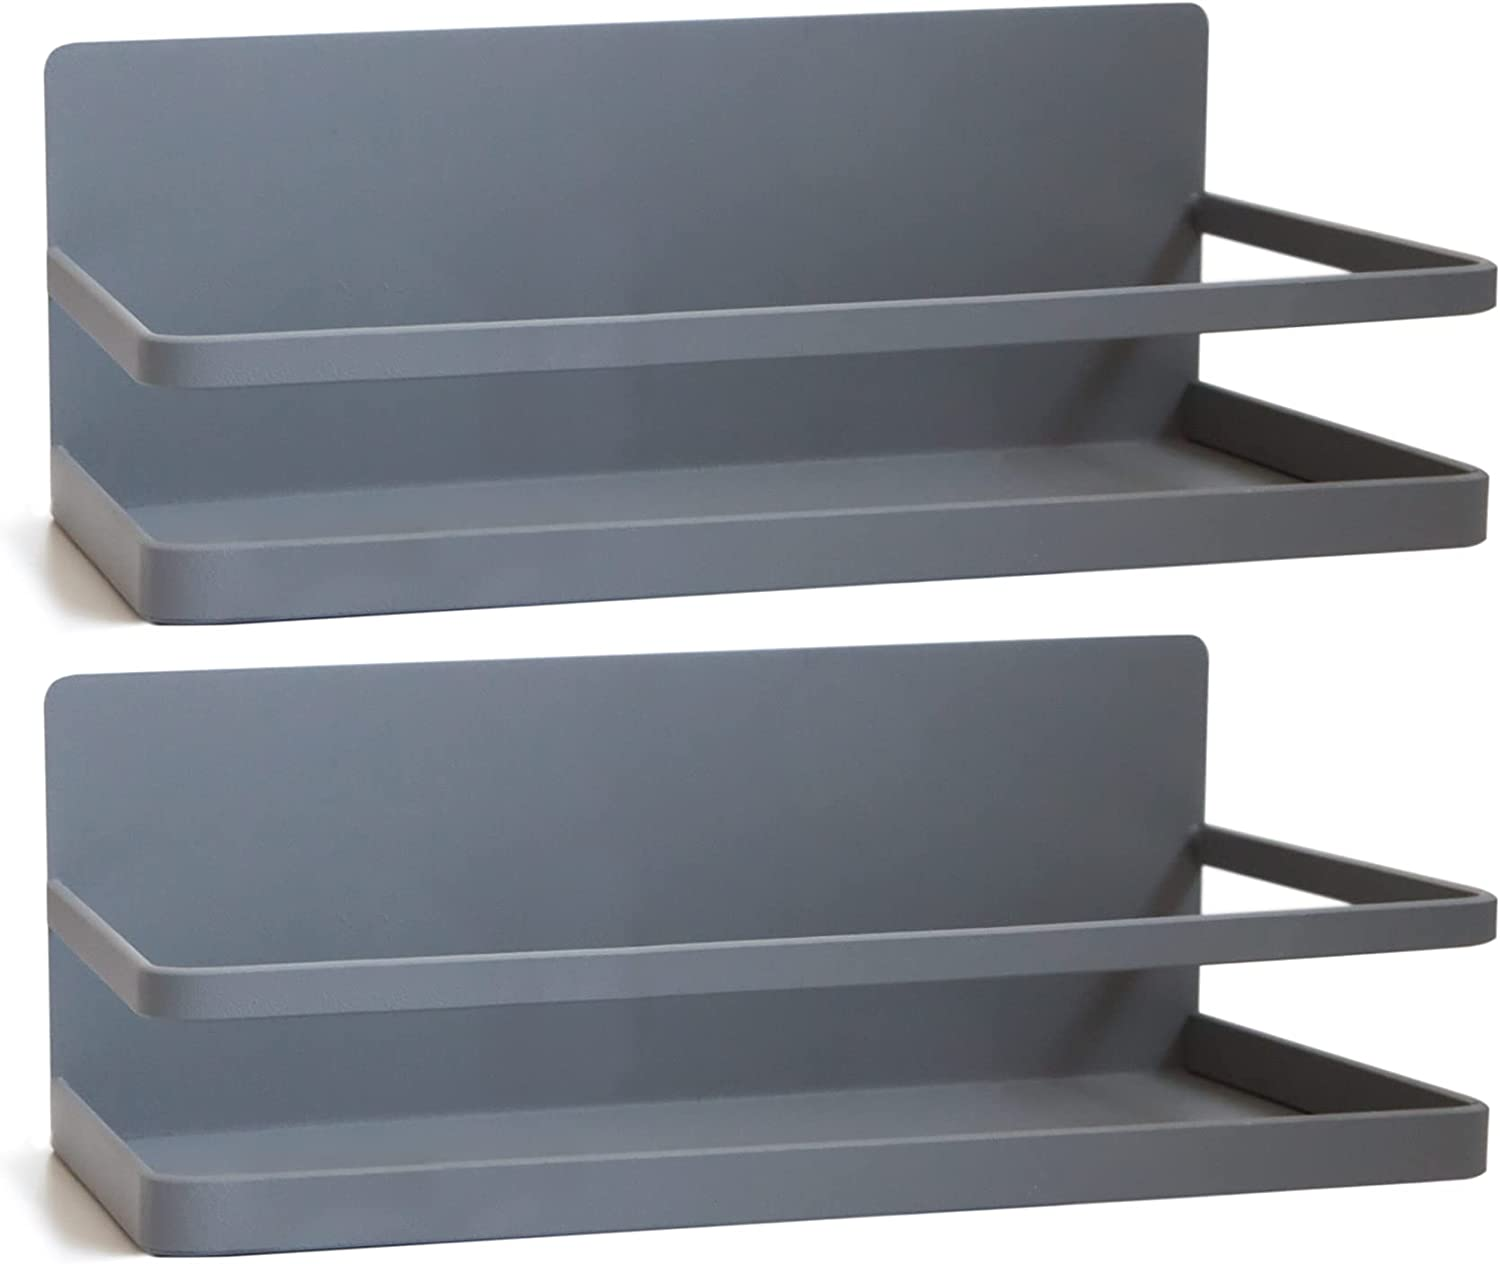 Magnetic Spice Rack for Refrigerator; Storage Shelf Kitchen Organizer with Strong Magnet for side of Fridge or over Stove to save space on Counter; includes 2 Removeable Hooks (Gray, 2 pack)